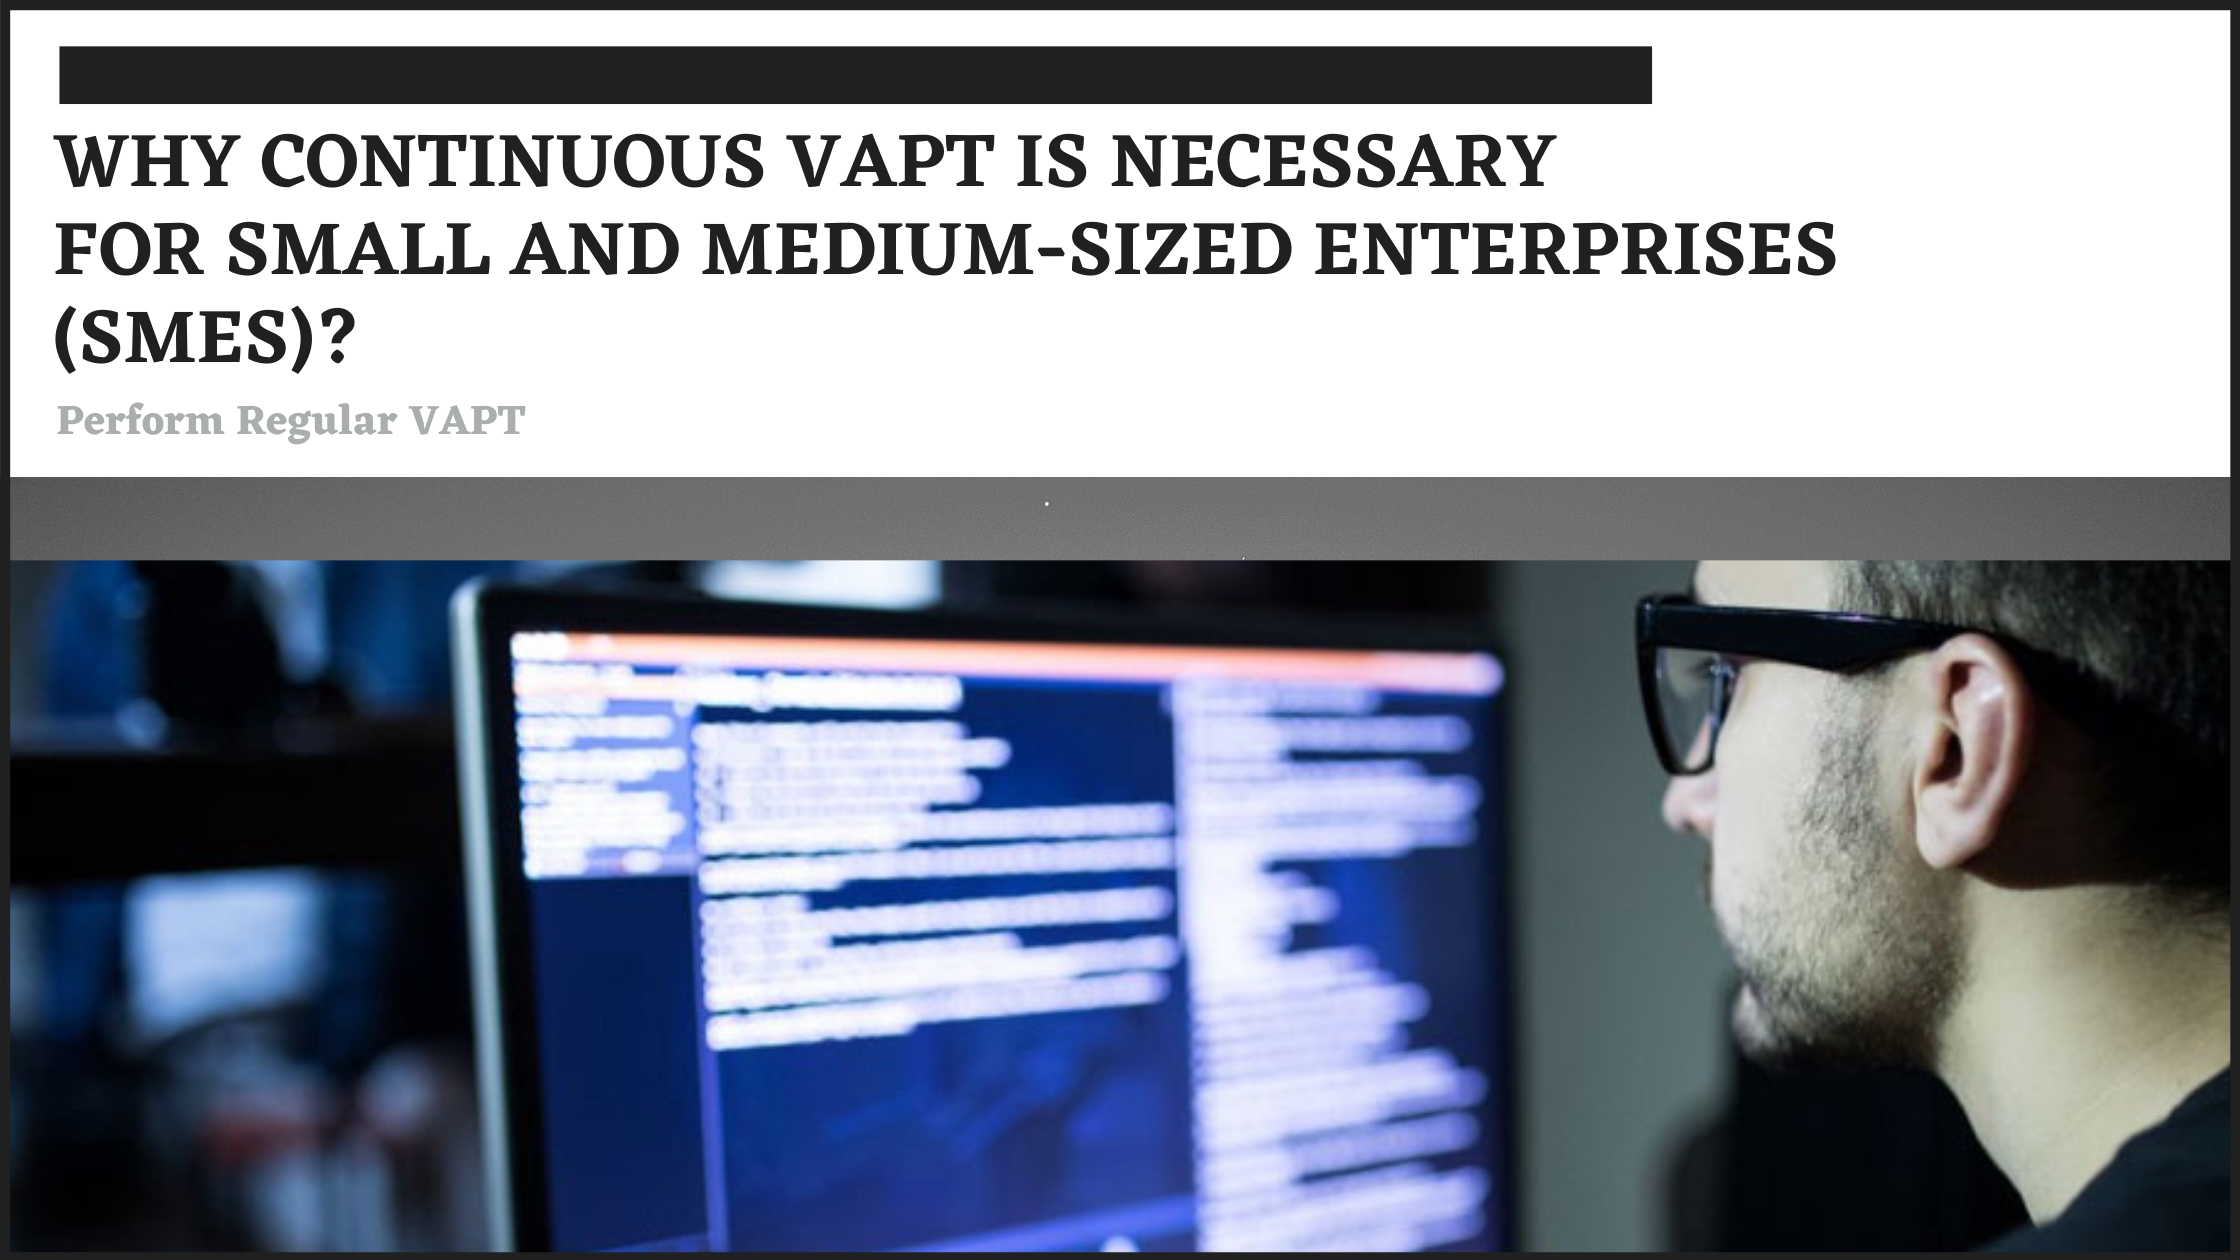 Why Continuous VAPT is necessary for SMEs?